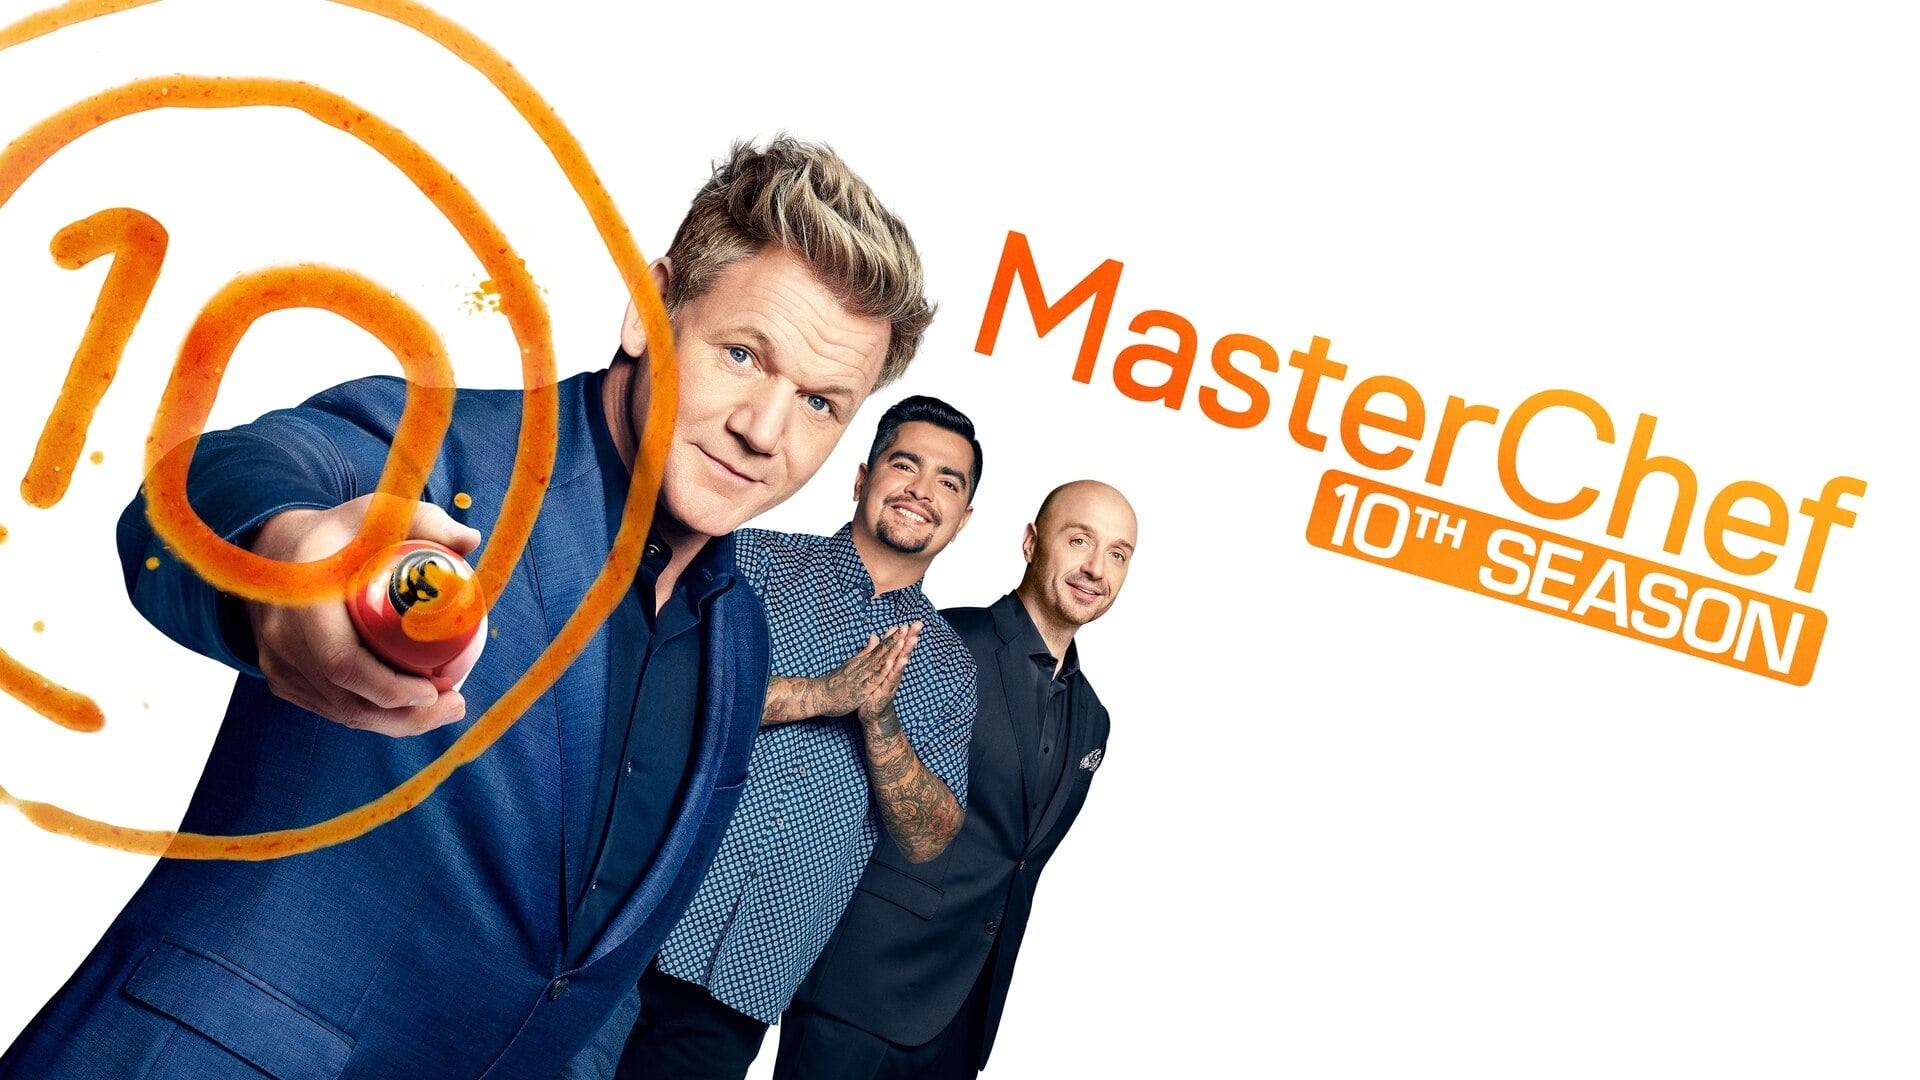 MasterChef - Season 10